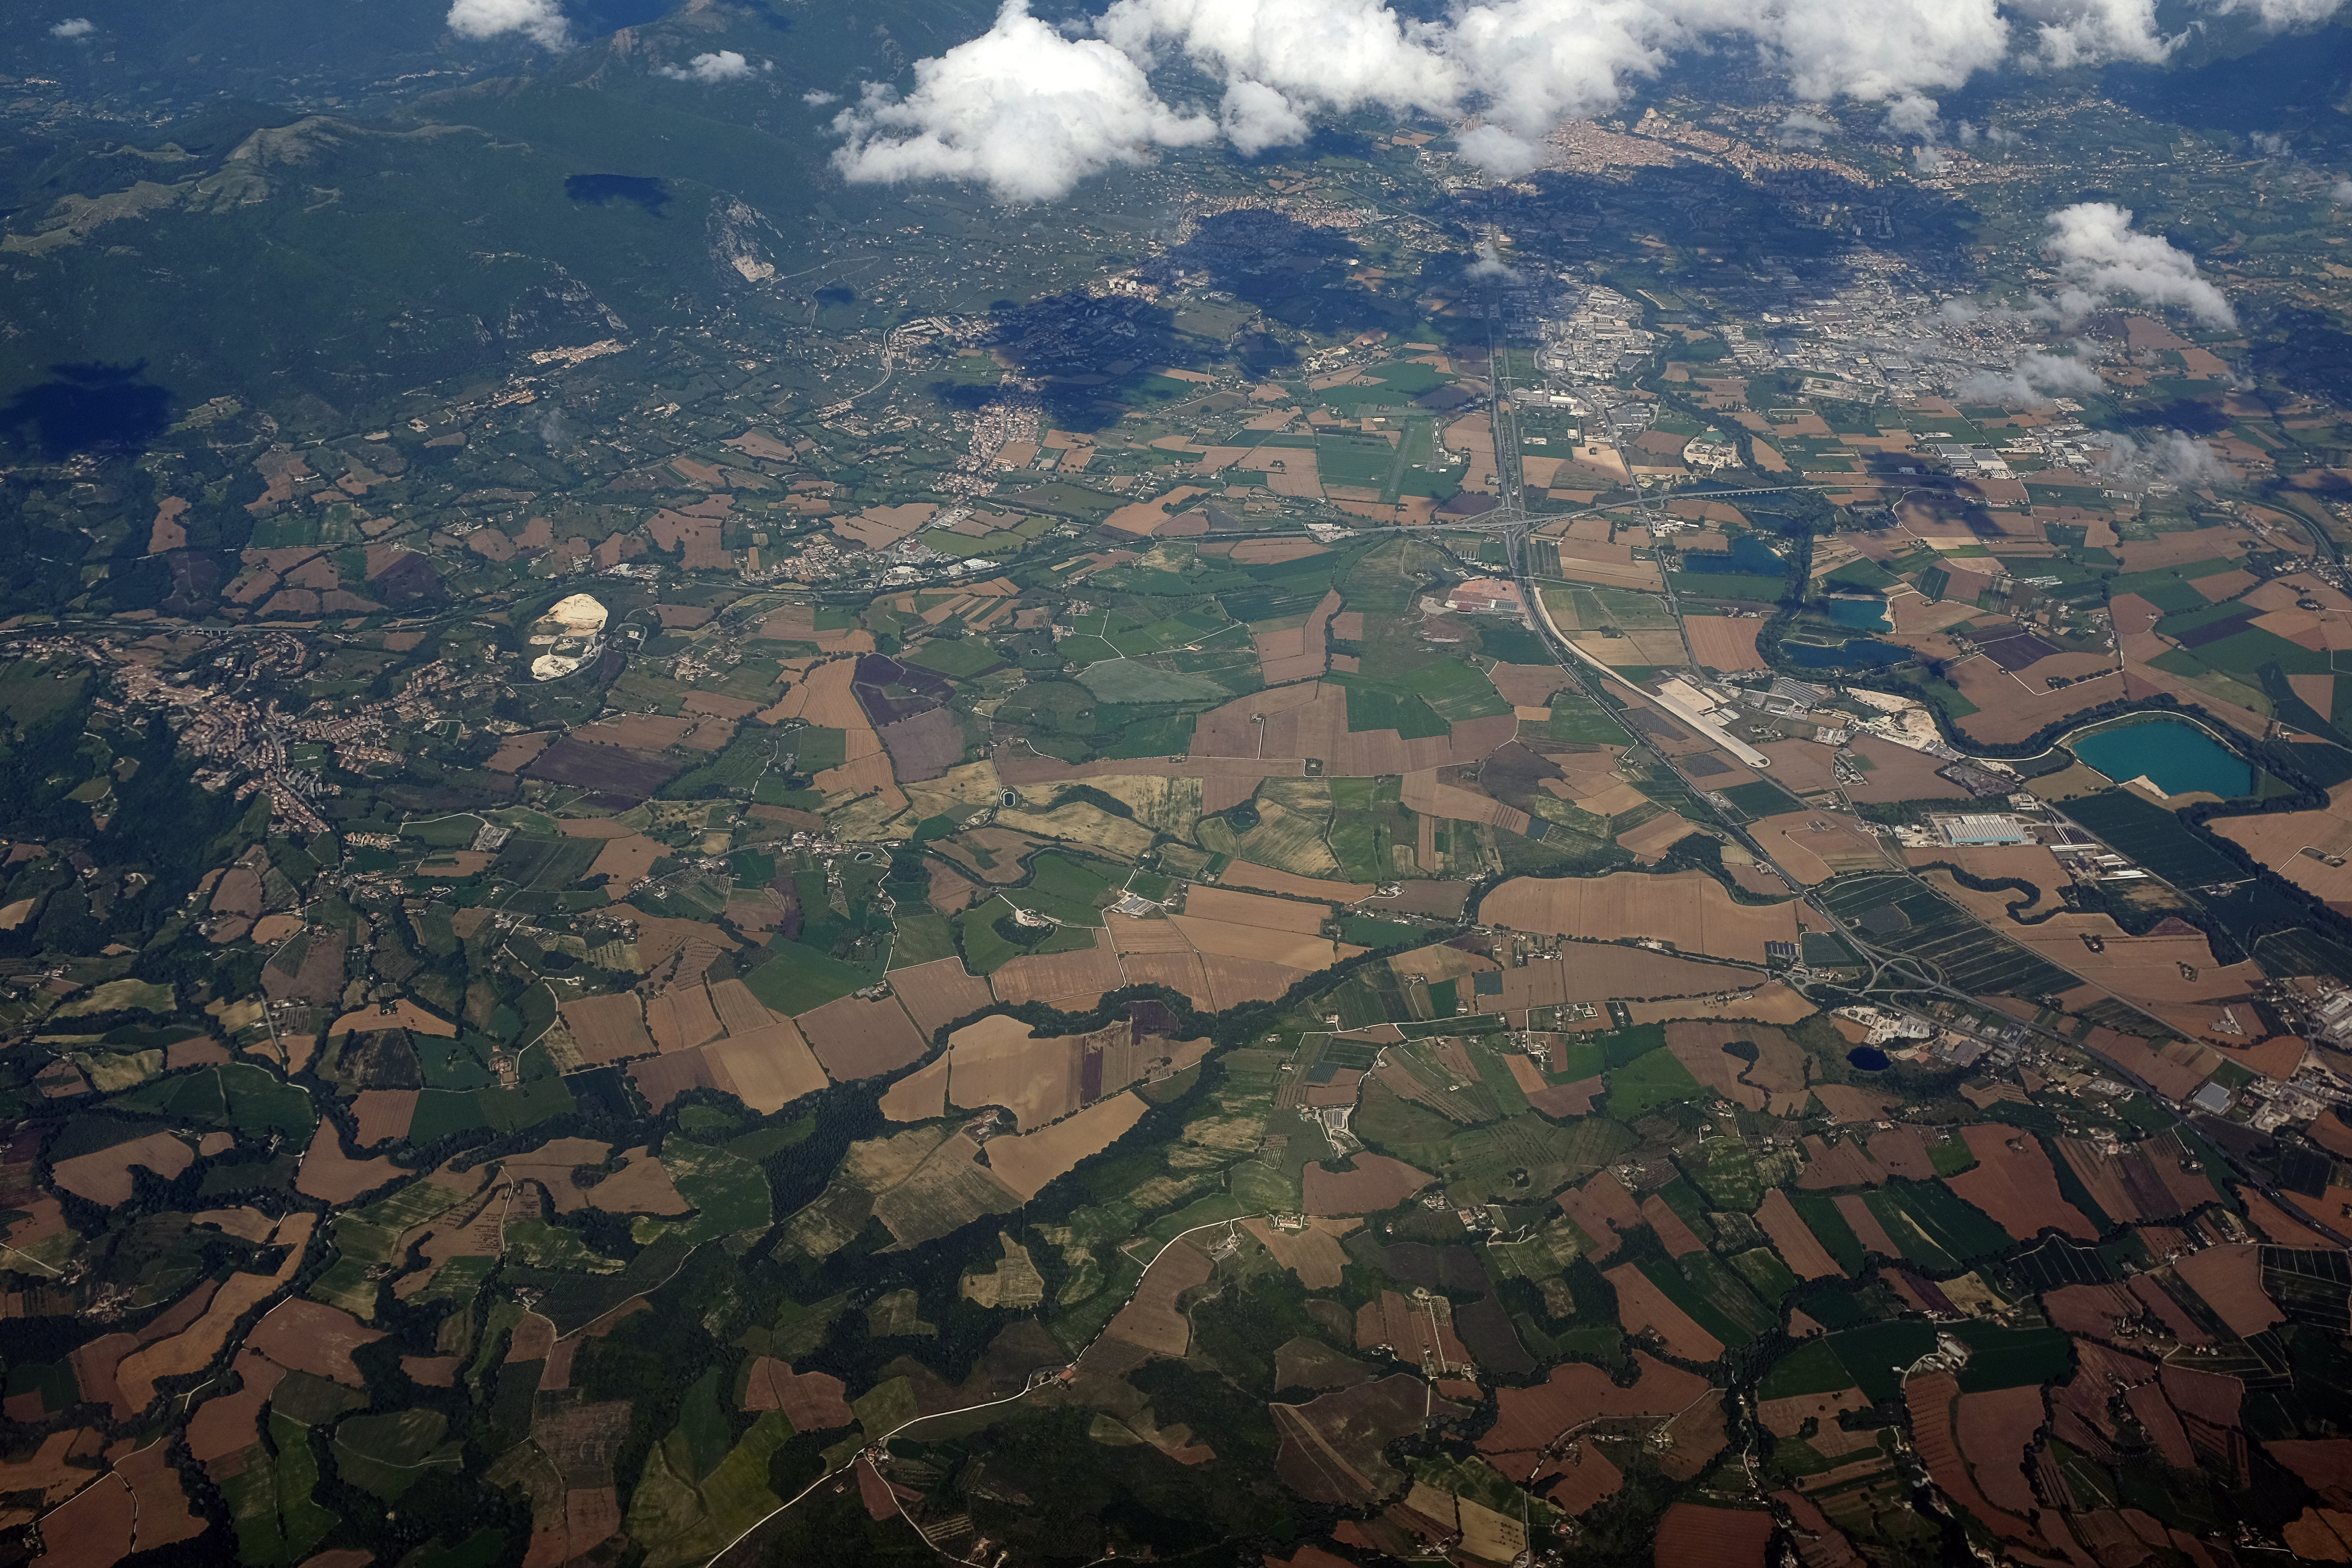 Top View of Green and Brown Field, Aerial, Bird's eye view, Earth surface, Field, HQ Photo